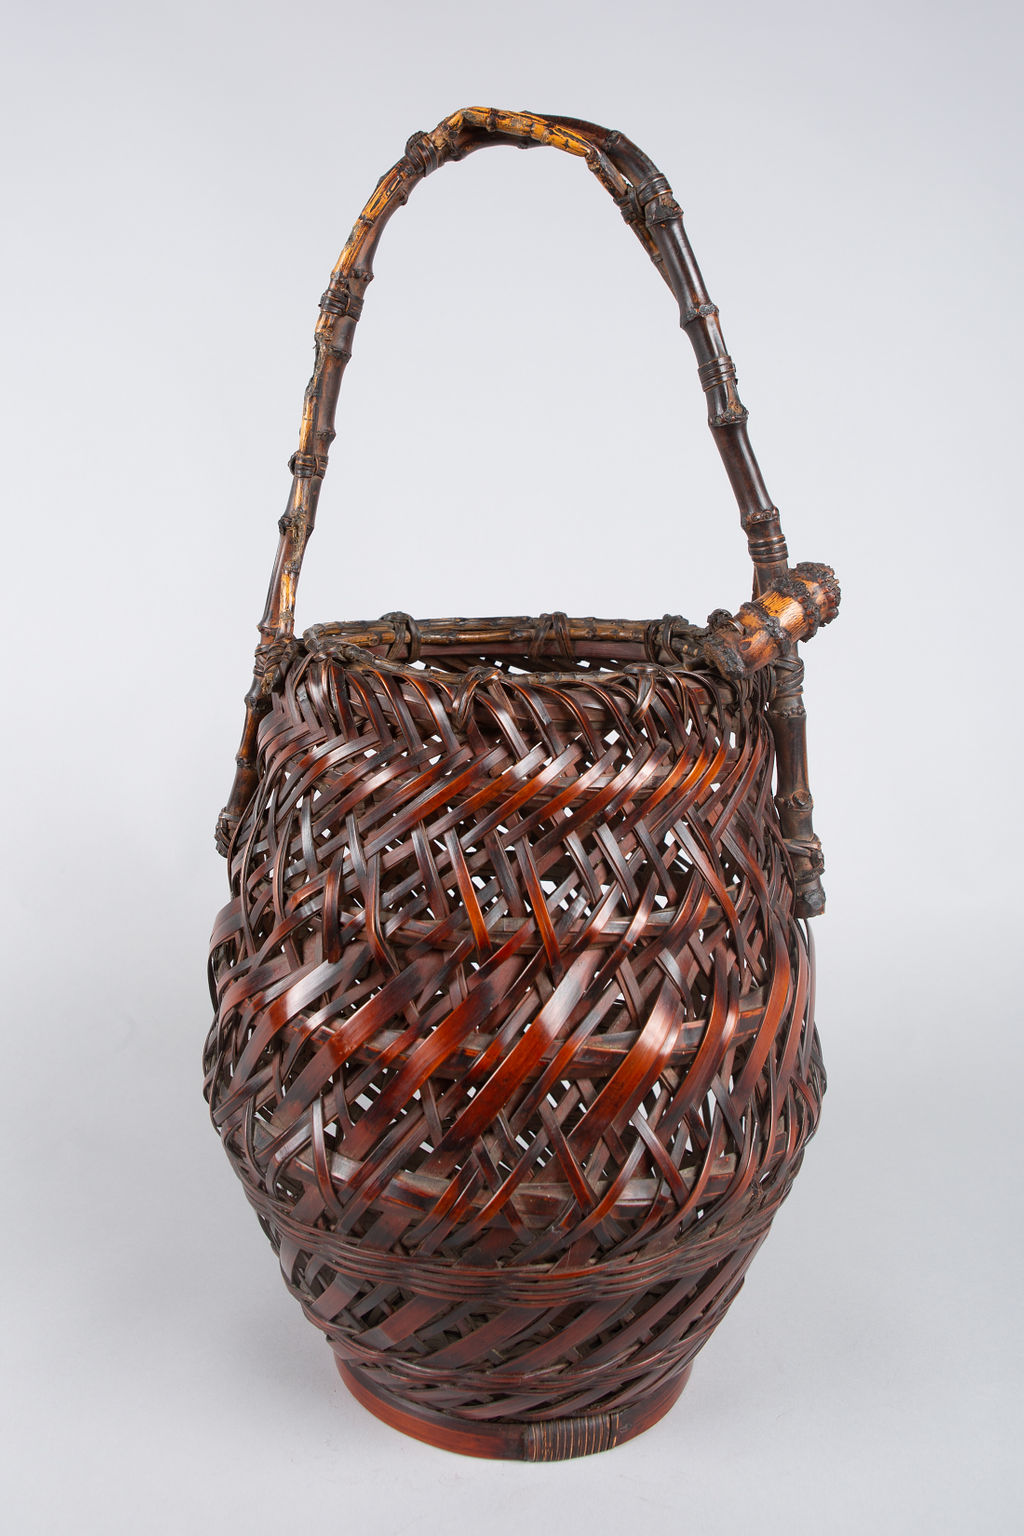 Japanese Antique Ikebana (Flower Arranging Basket)